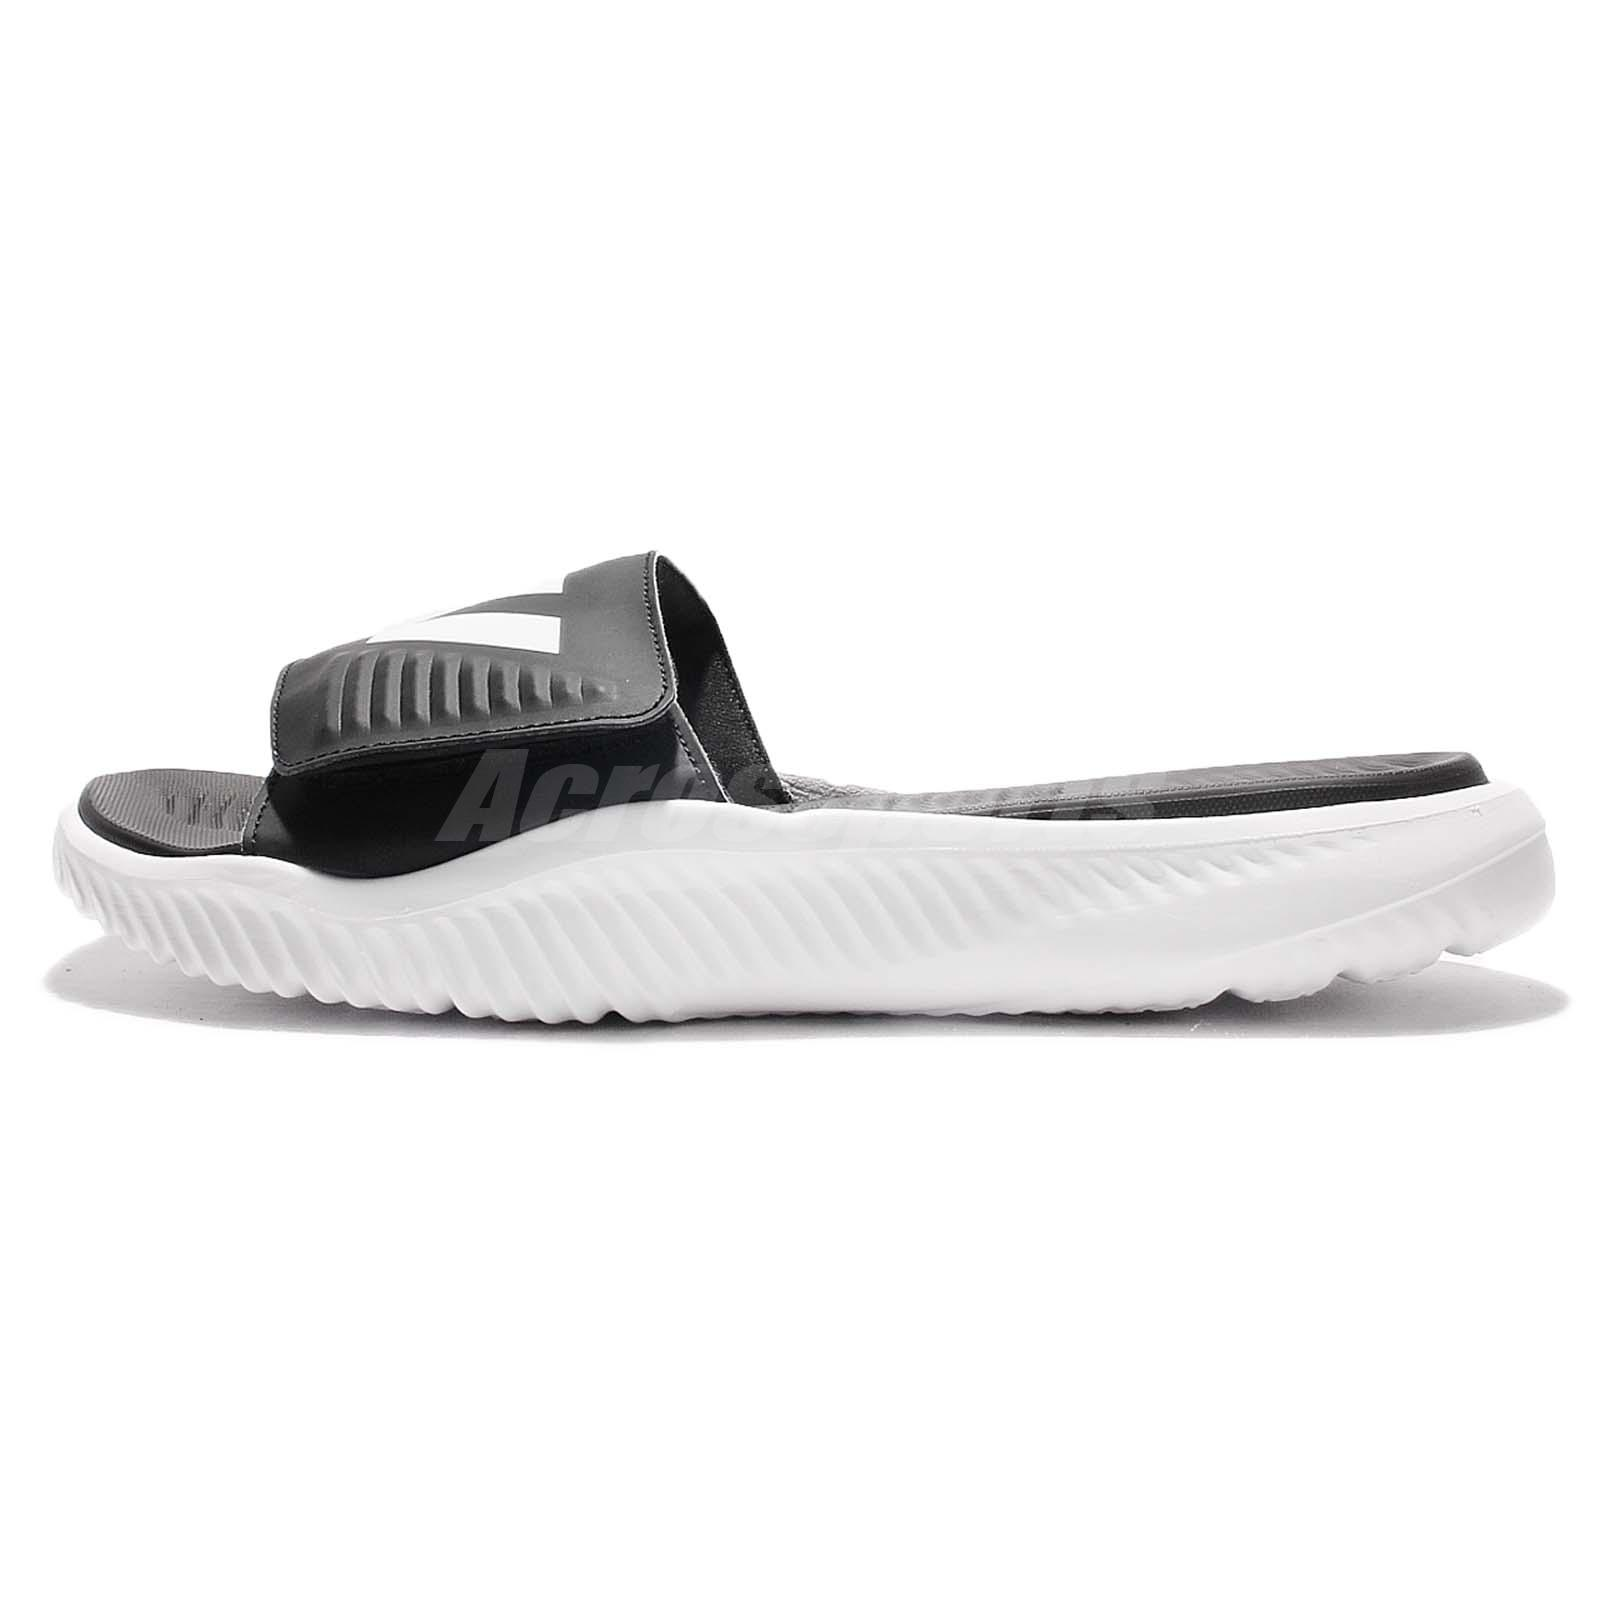 Adidas Slides Grey Sconti On Sale >Off62% Di Sconti Grey 6e5ae3